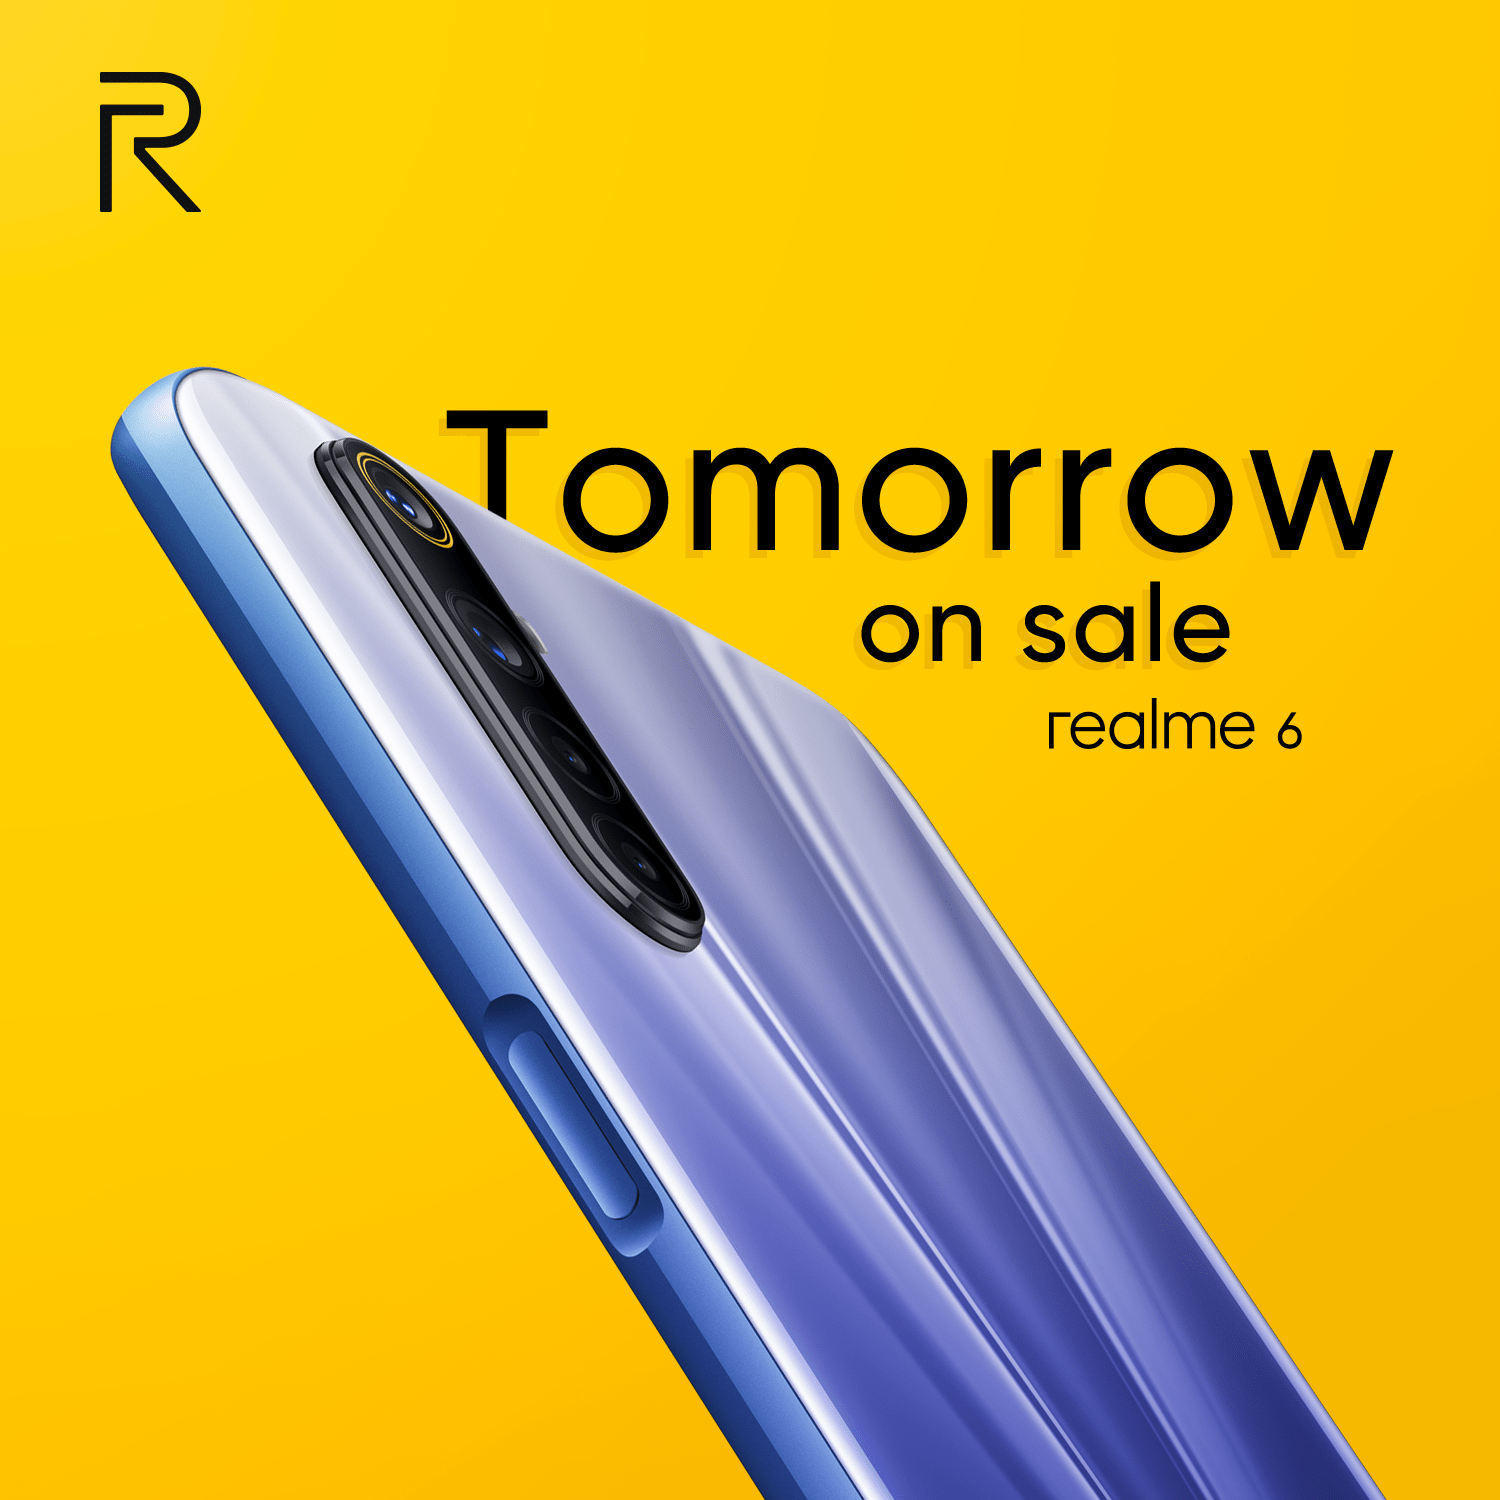 realme 6 will be available on 9th April